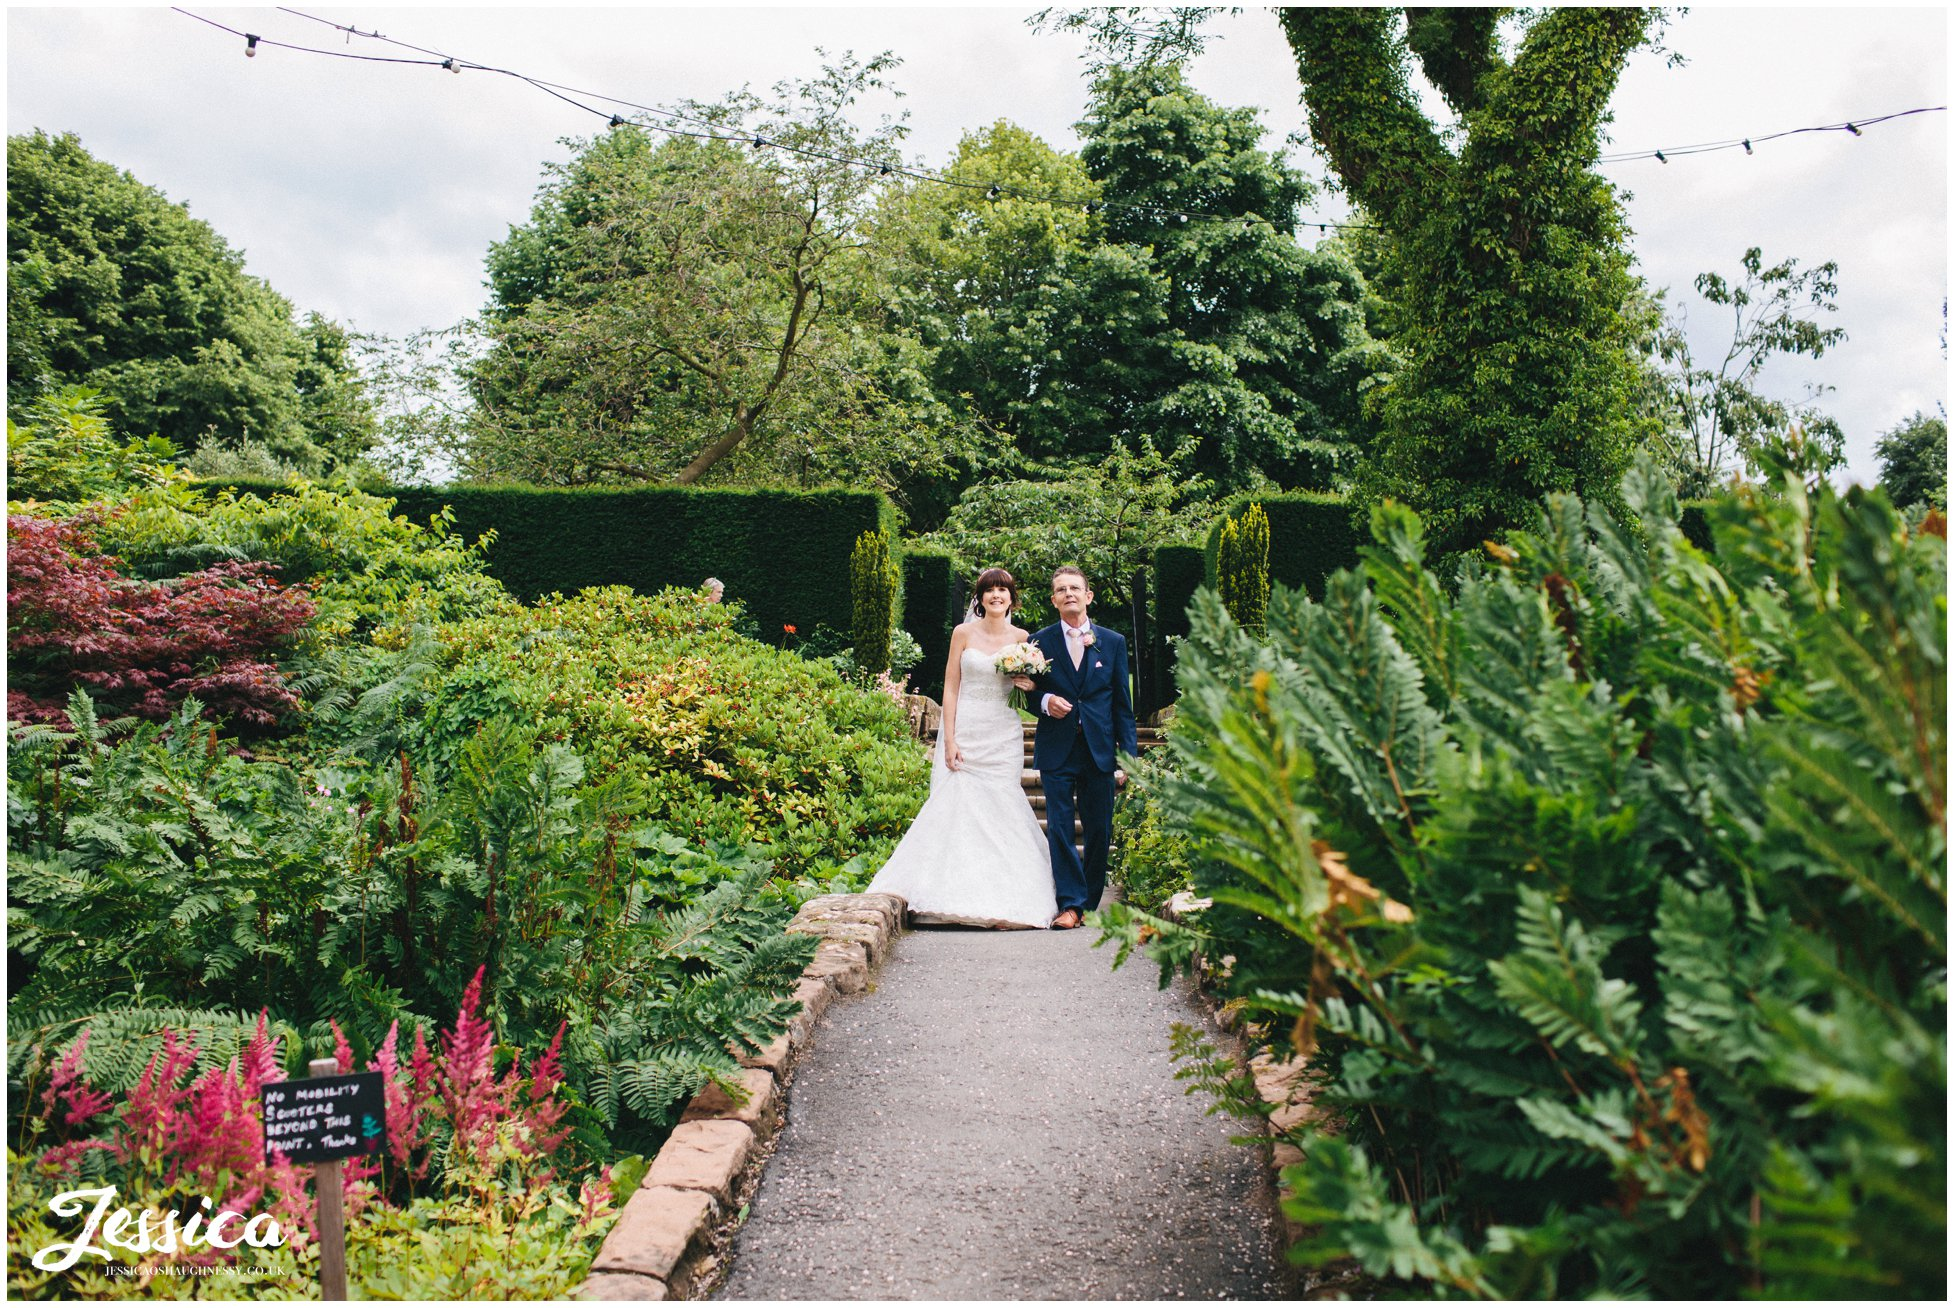 the bride & her father walk down the steps to her wedding ceremony at ness gardens on the wirral